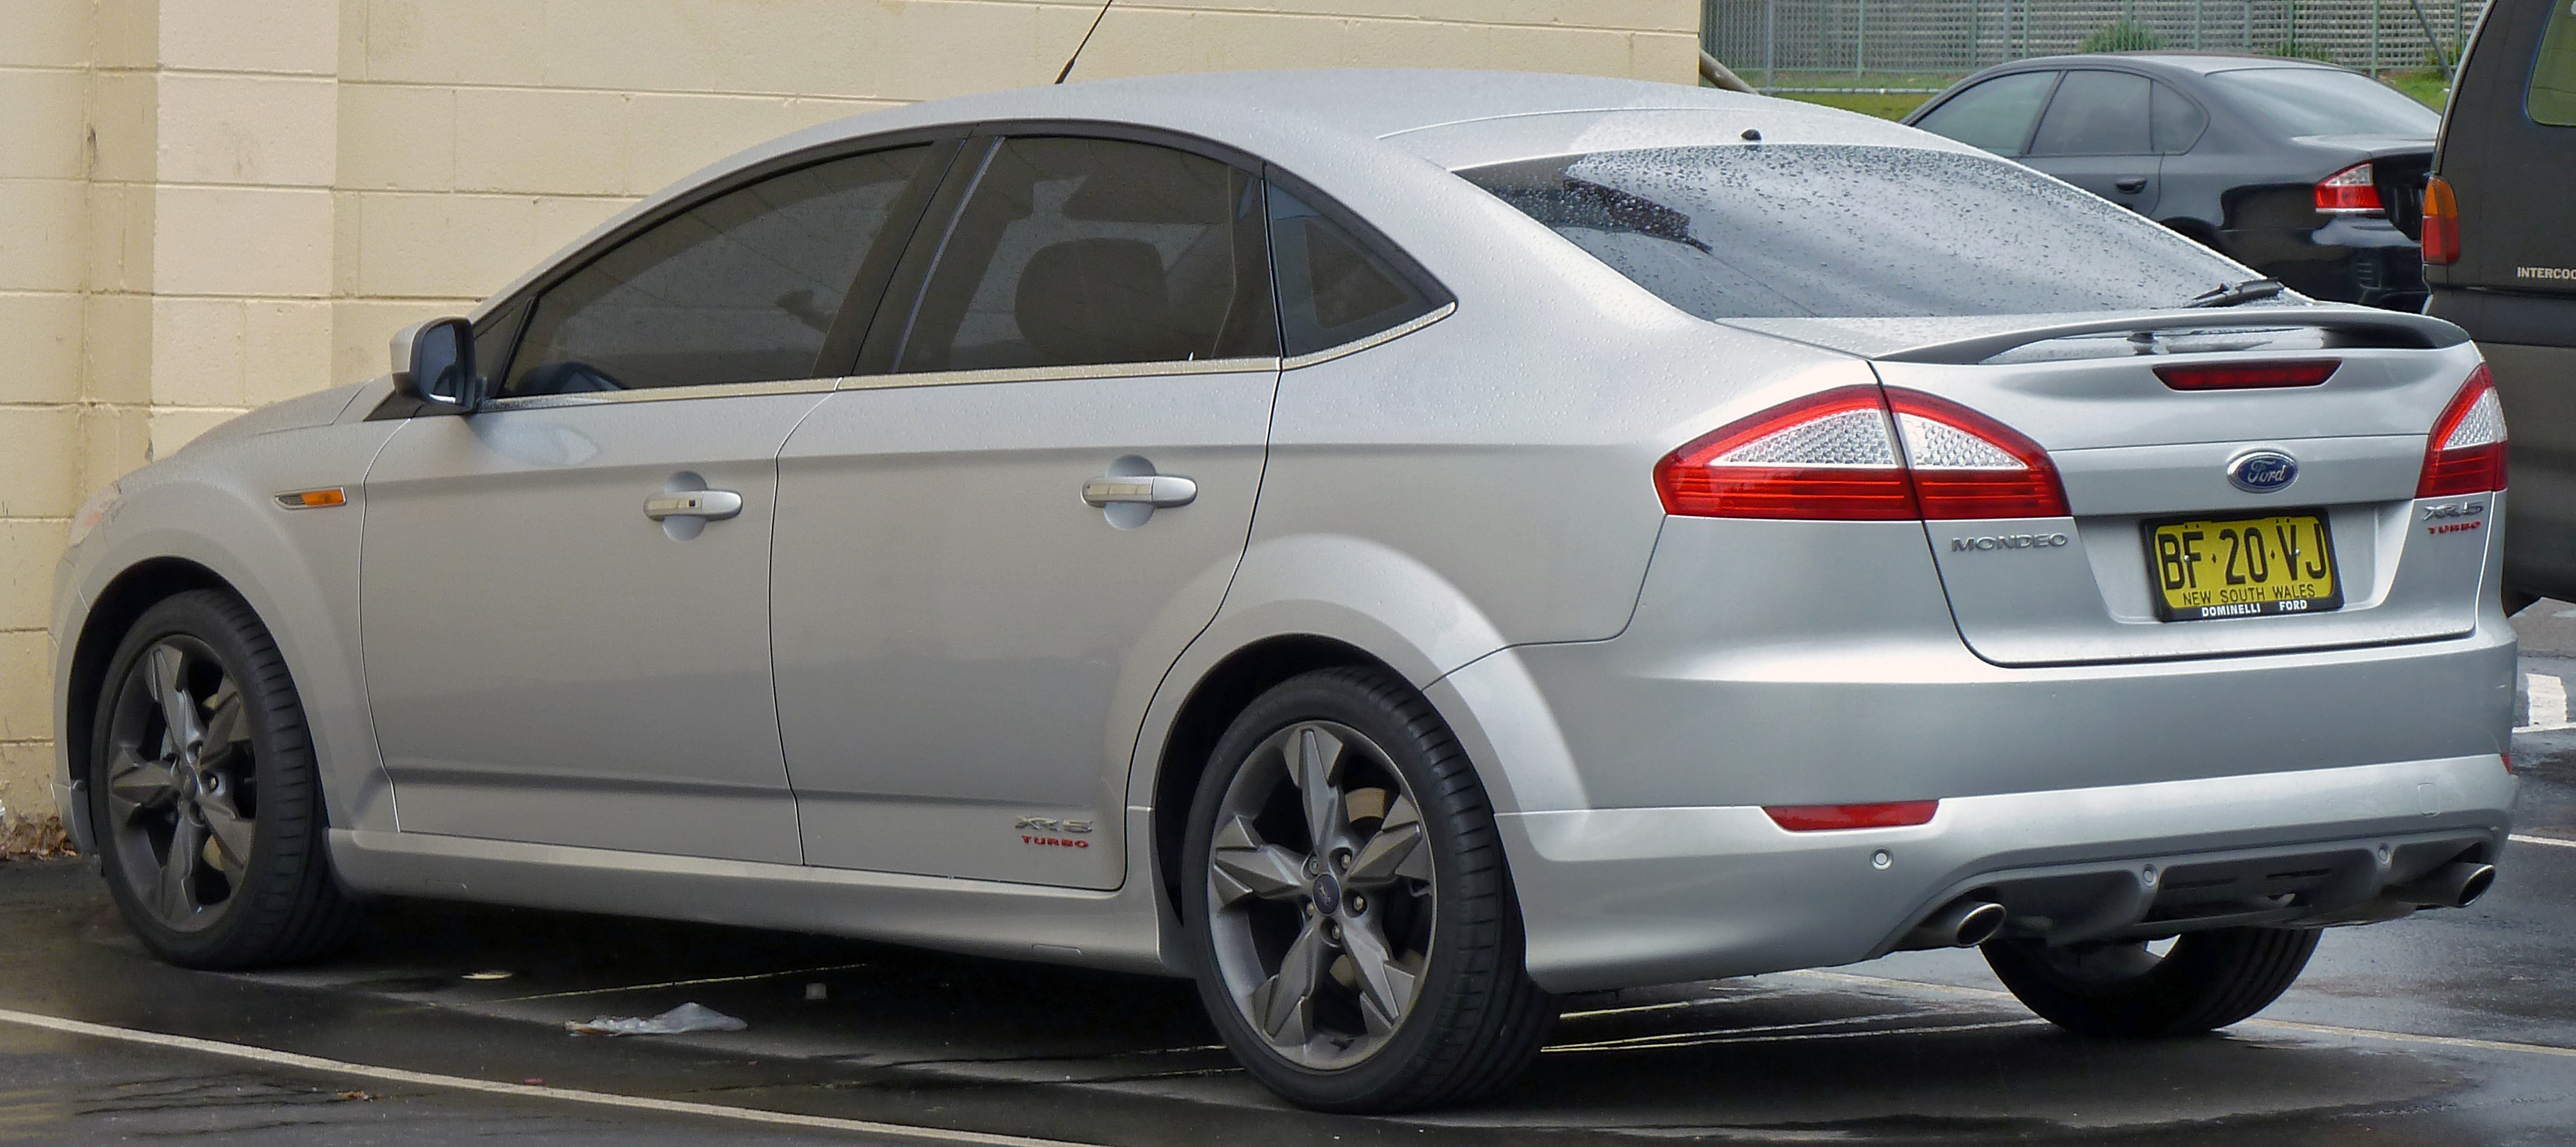 2009 Ford Mondeo #3